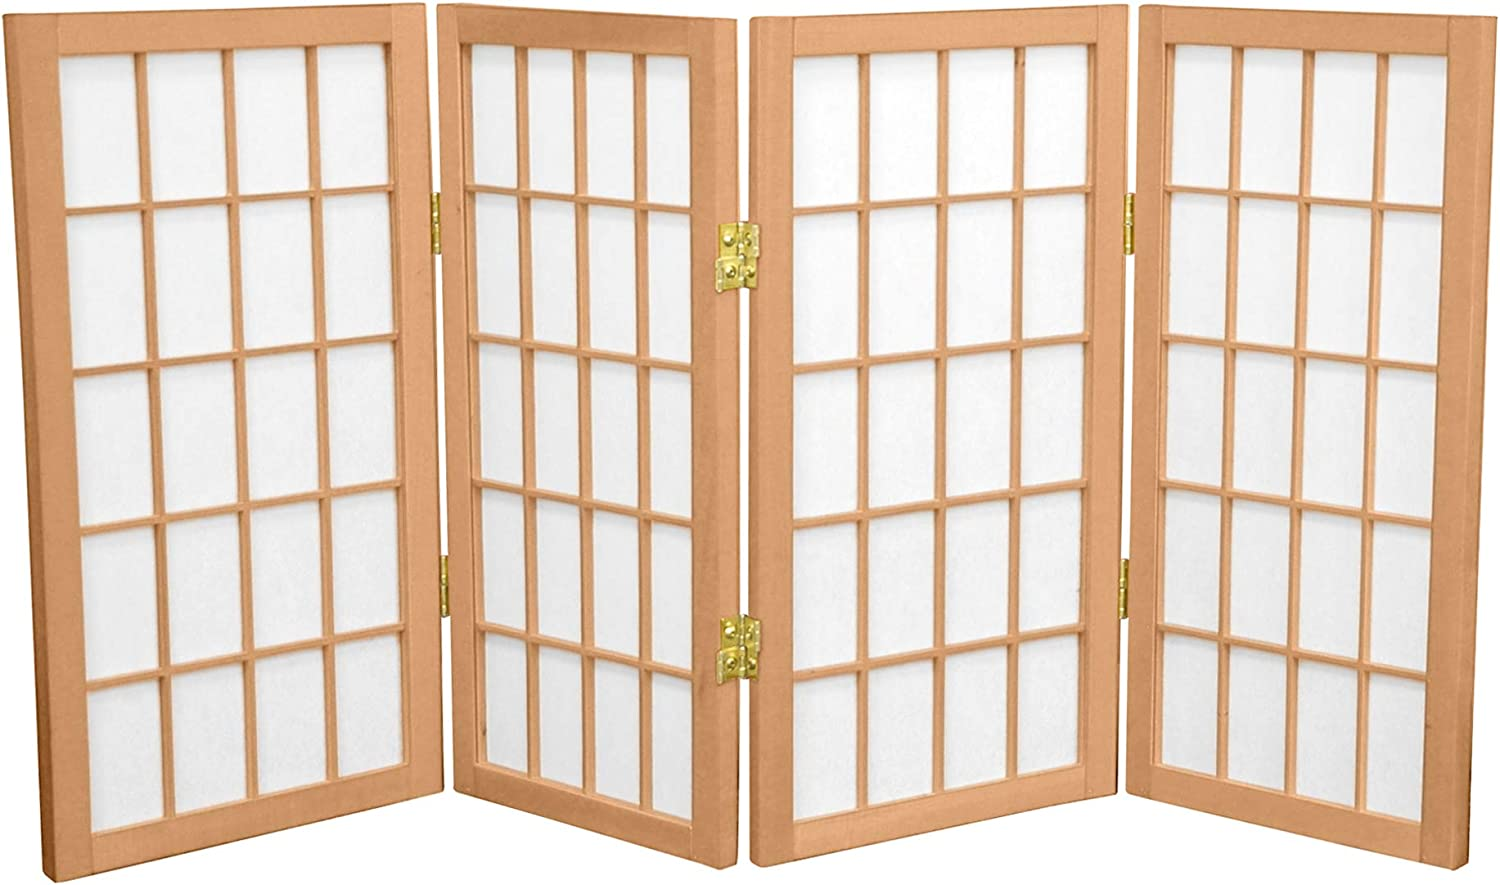 Oriental Furniture 2 ft. Tall Desktop Window Pane Shoji Screen - Natural - 4 Panels